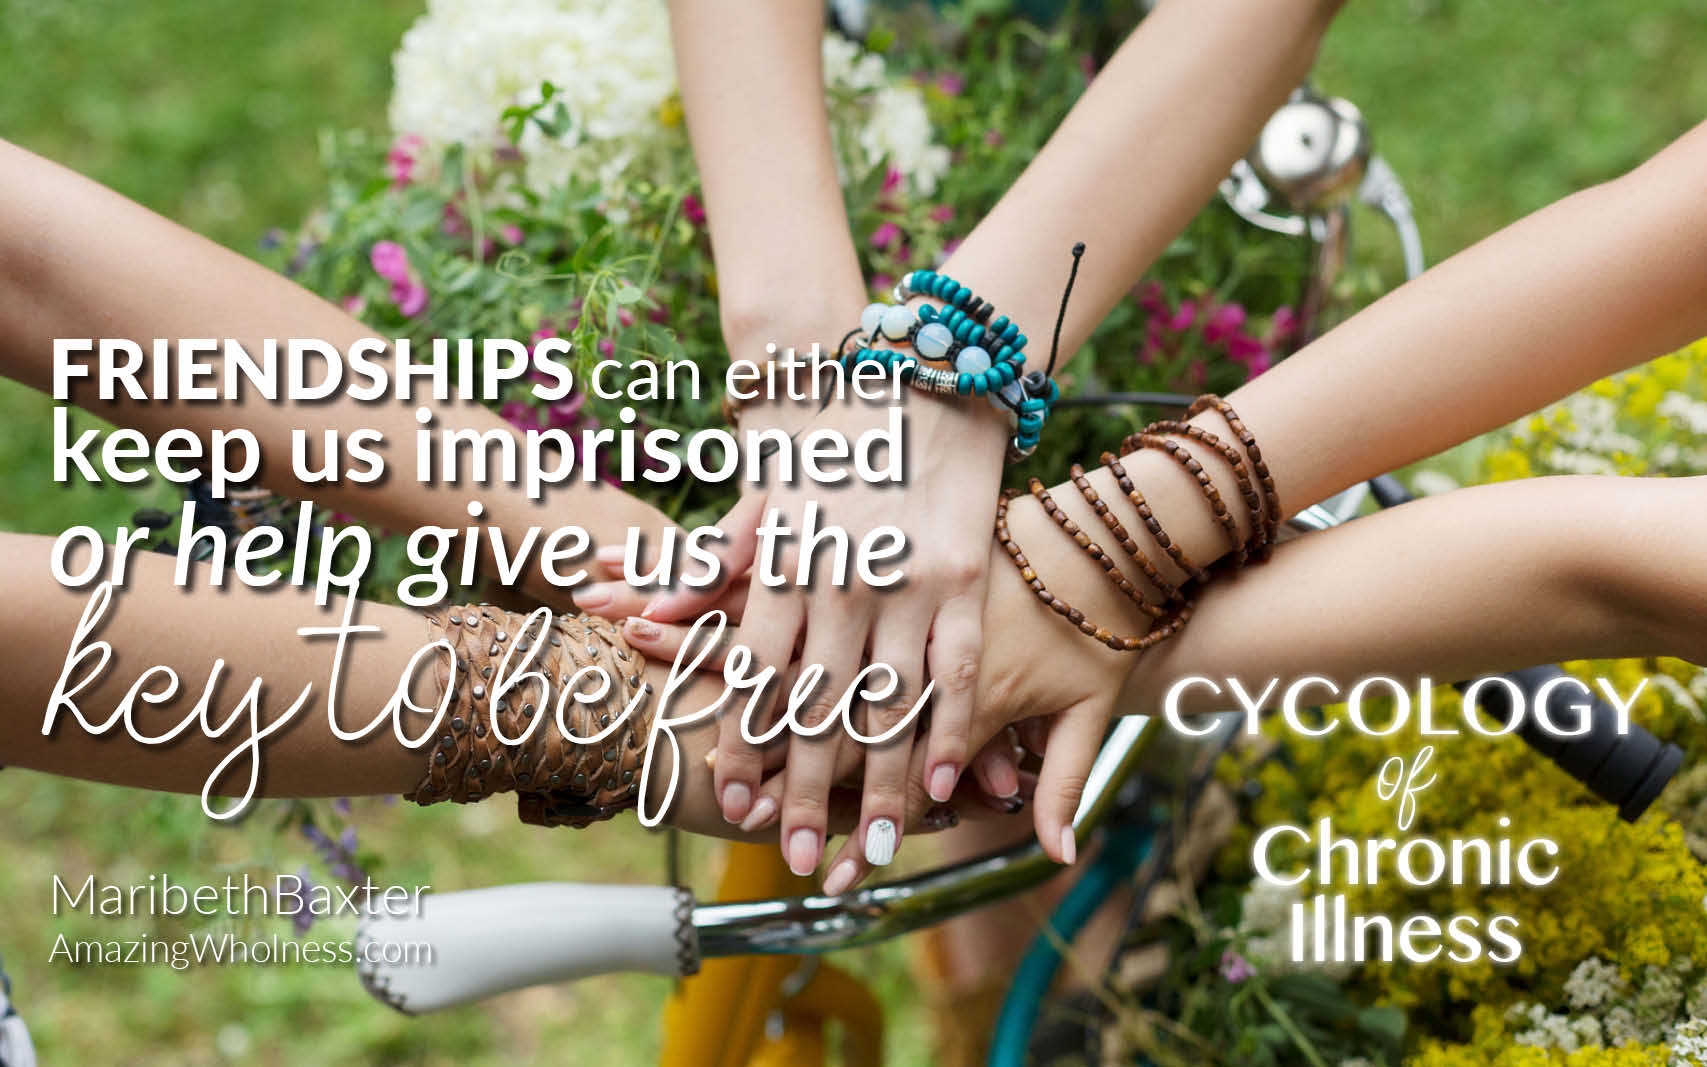 Friendships Can Either Imprison Us Or Help Give Us The Key To Be Free – Cycology of Illness